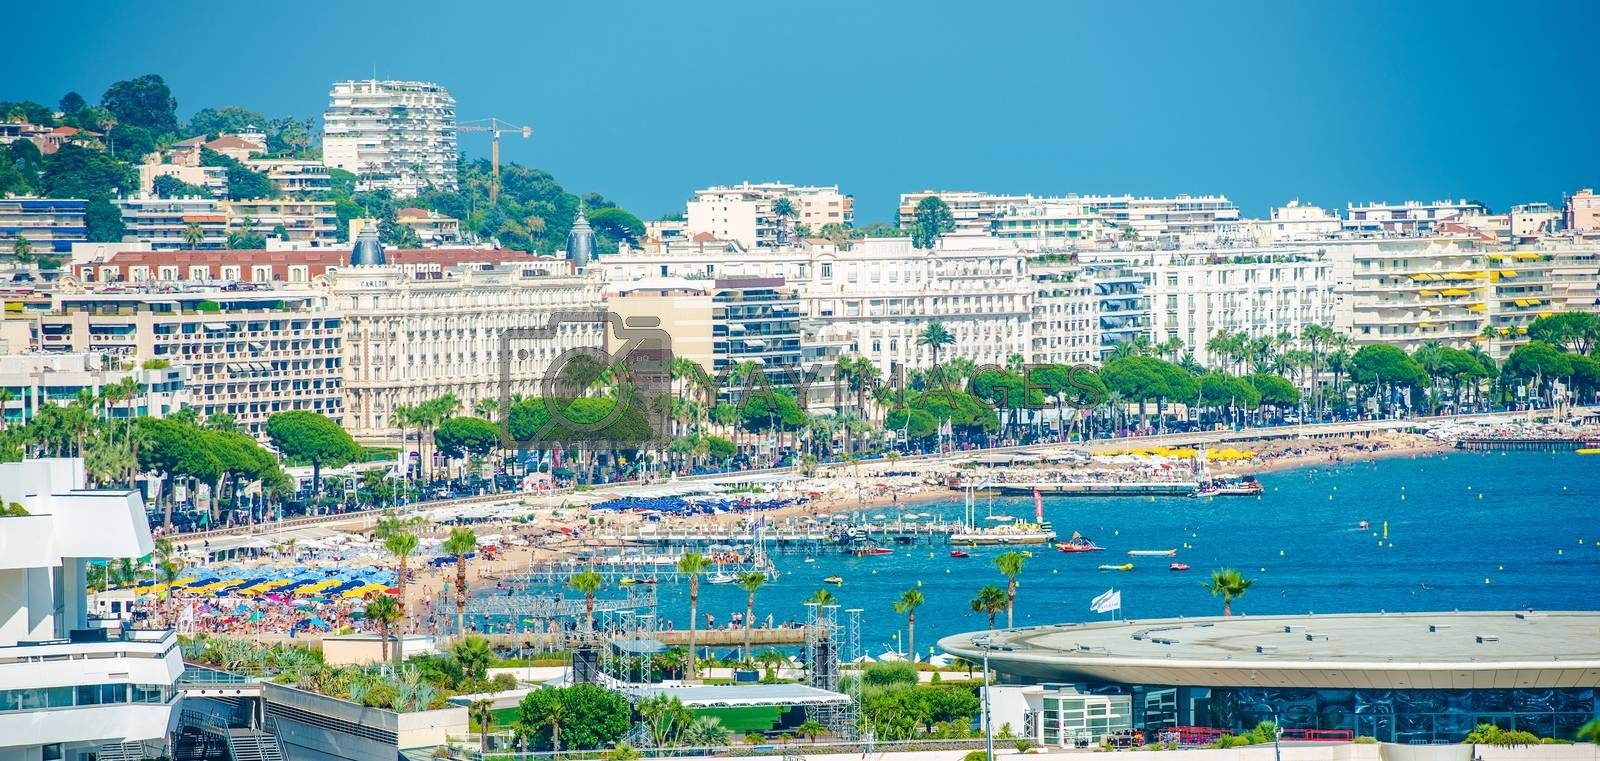 Royalty free image of City of Cannes France by welcomia